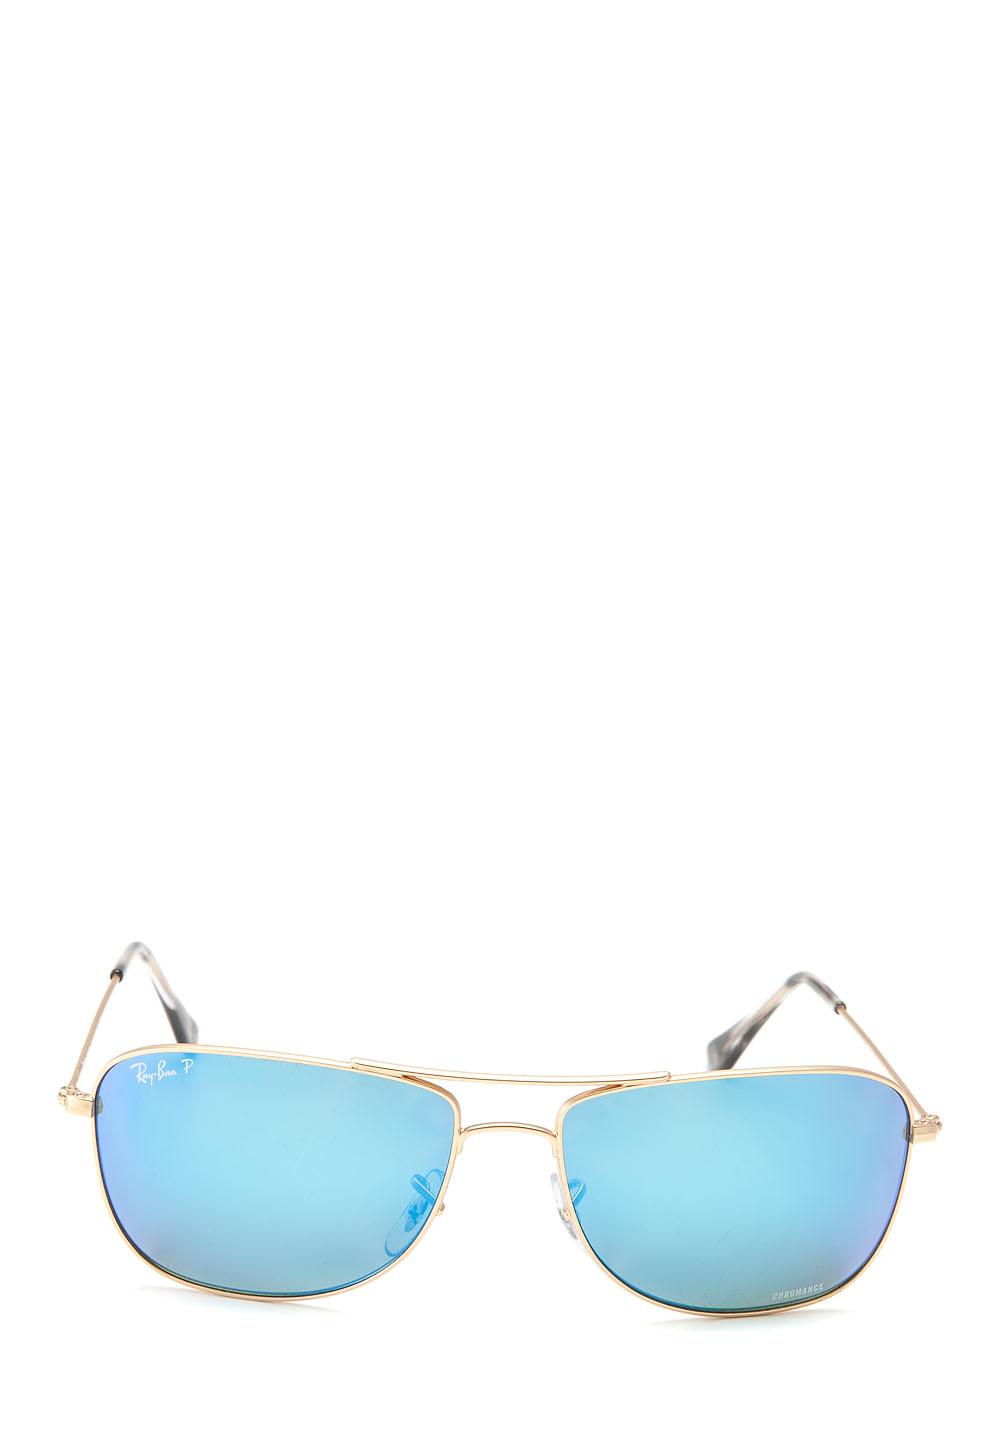 Ray-Ban Sonnenbrille Rb3543, polarized, UV 400, gold